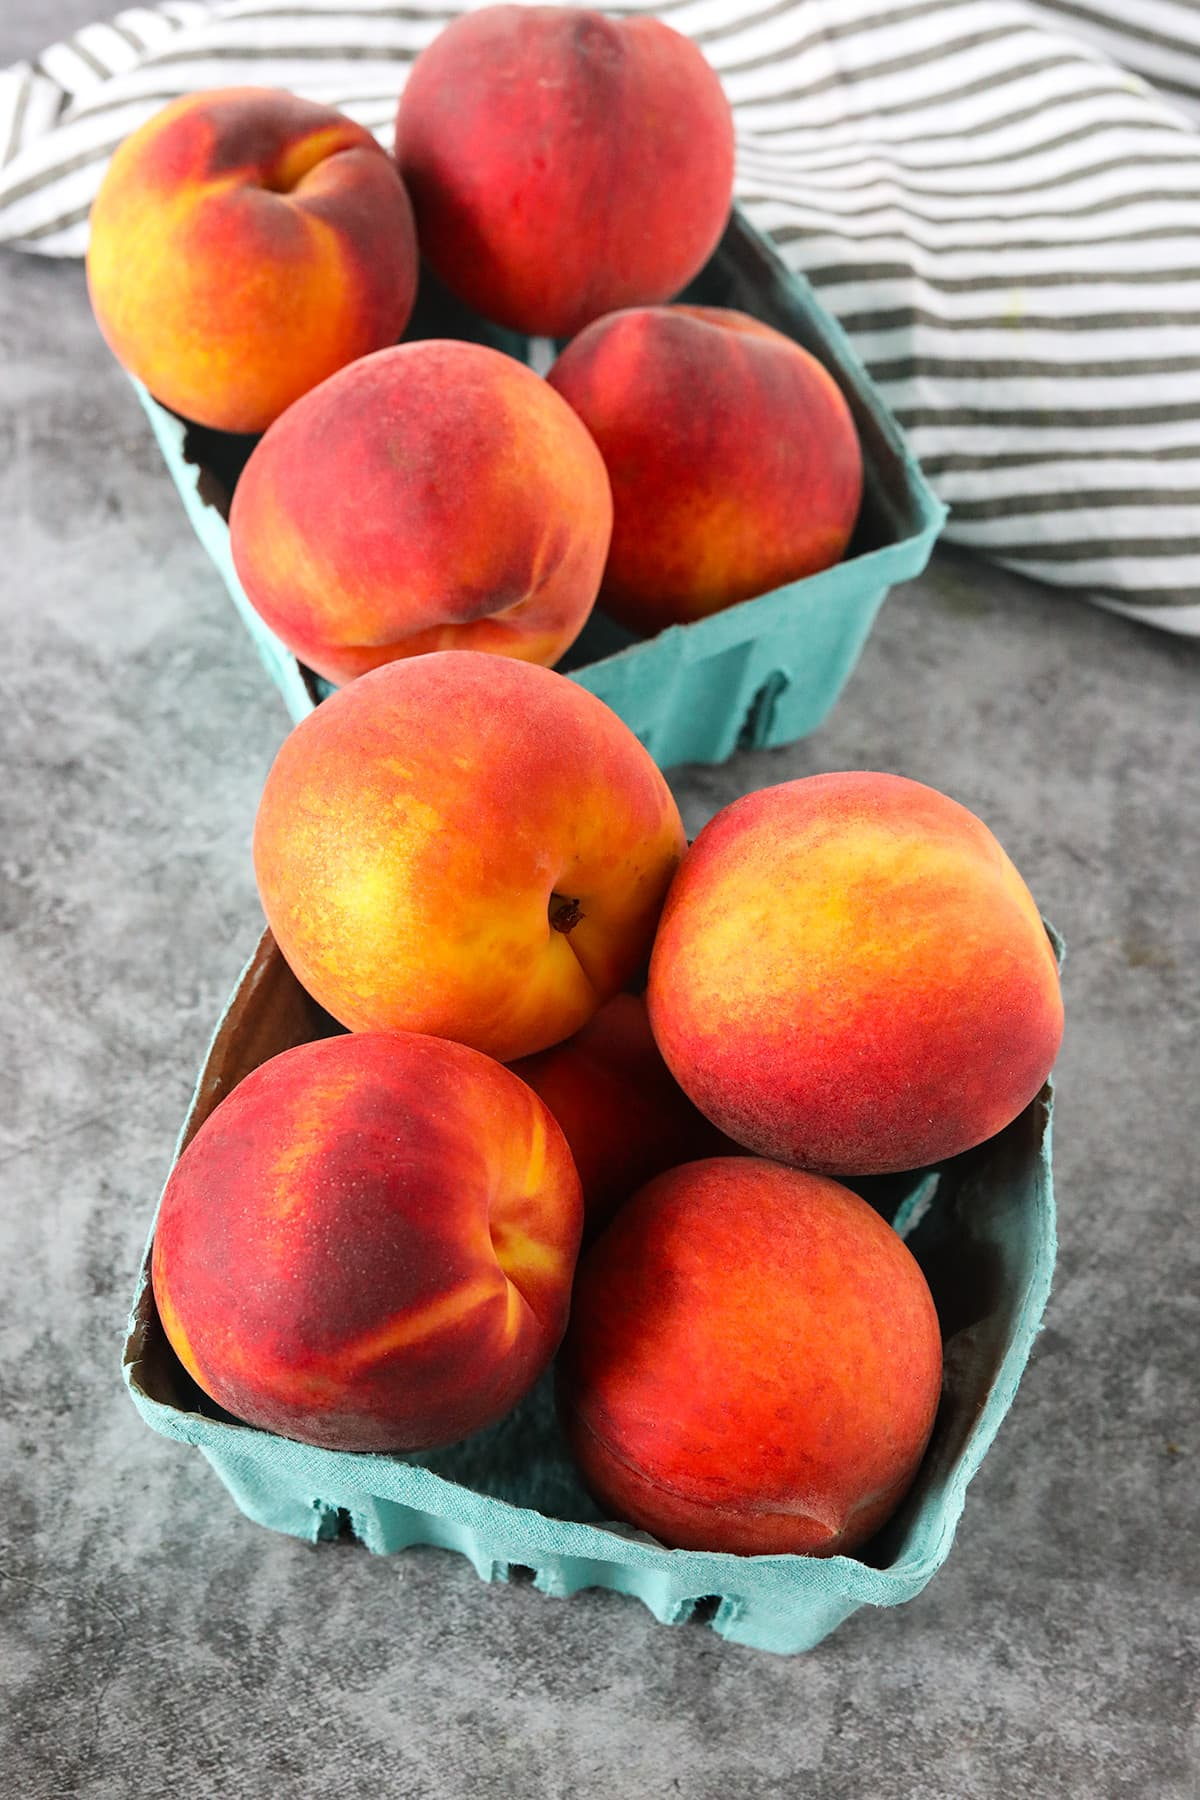 peaches for air fryer peaches in 2 green paper baskets on a grey marble background